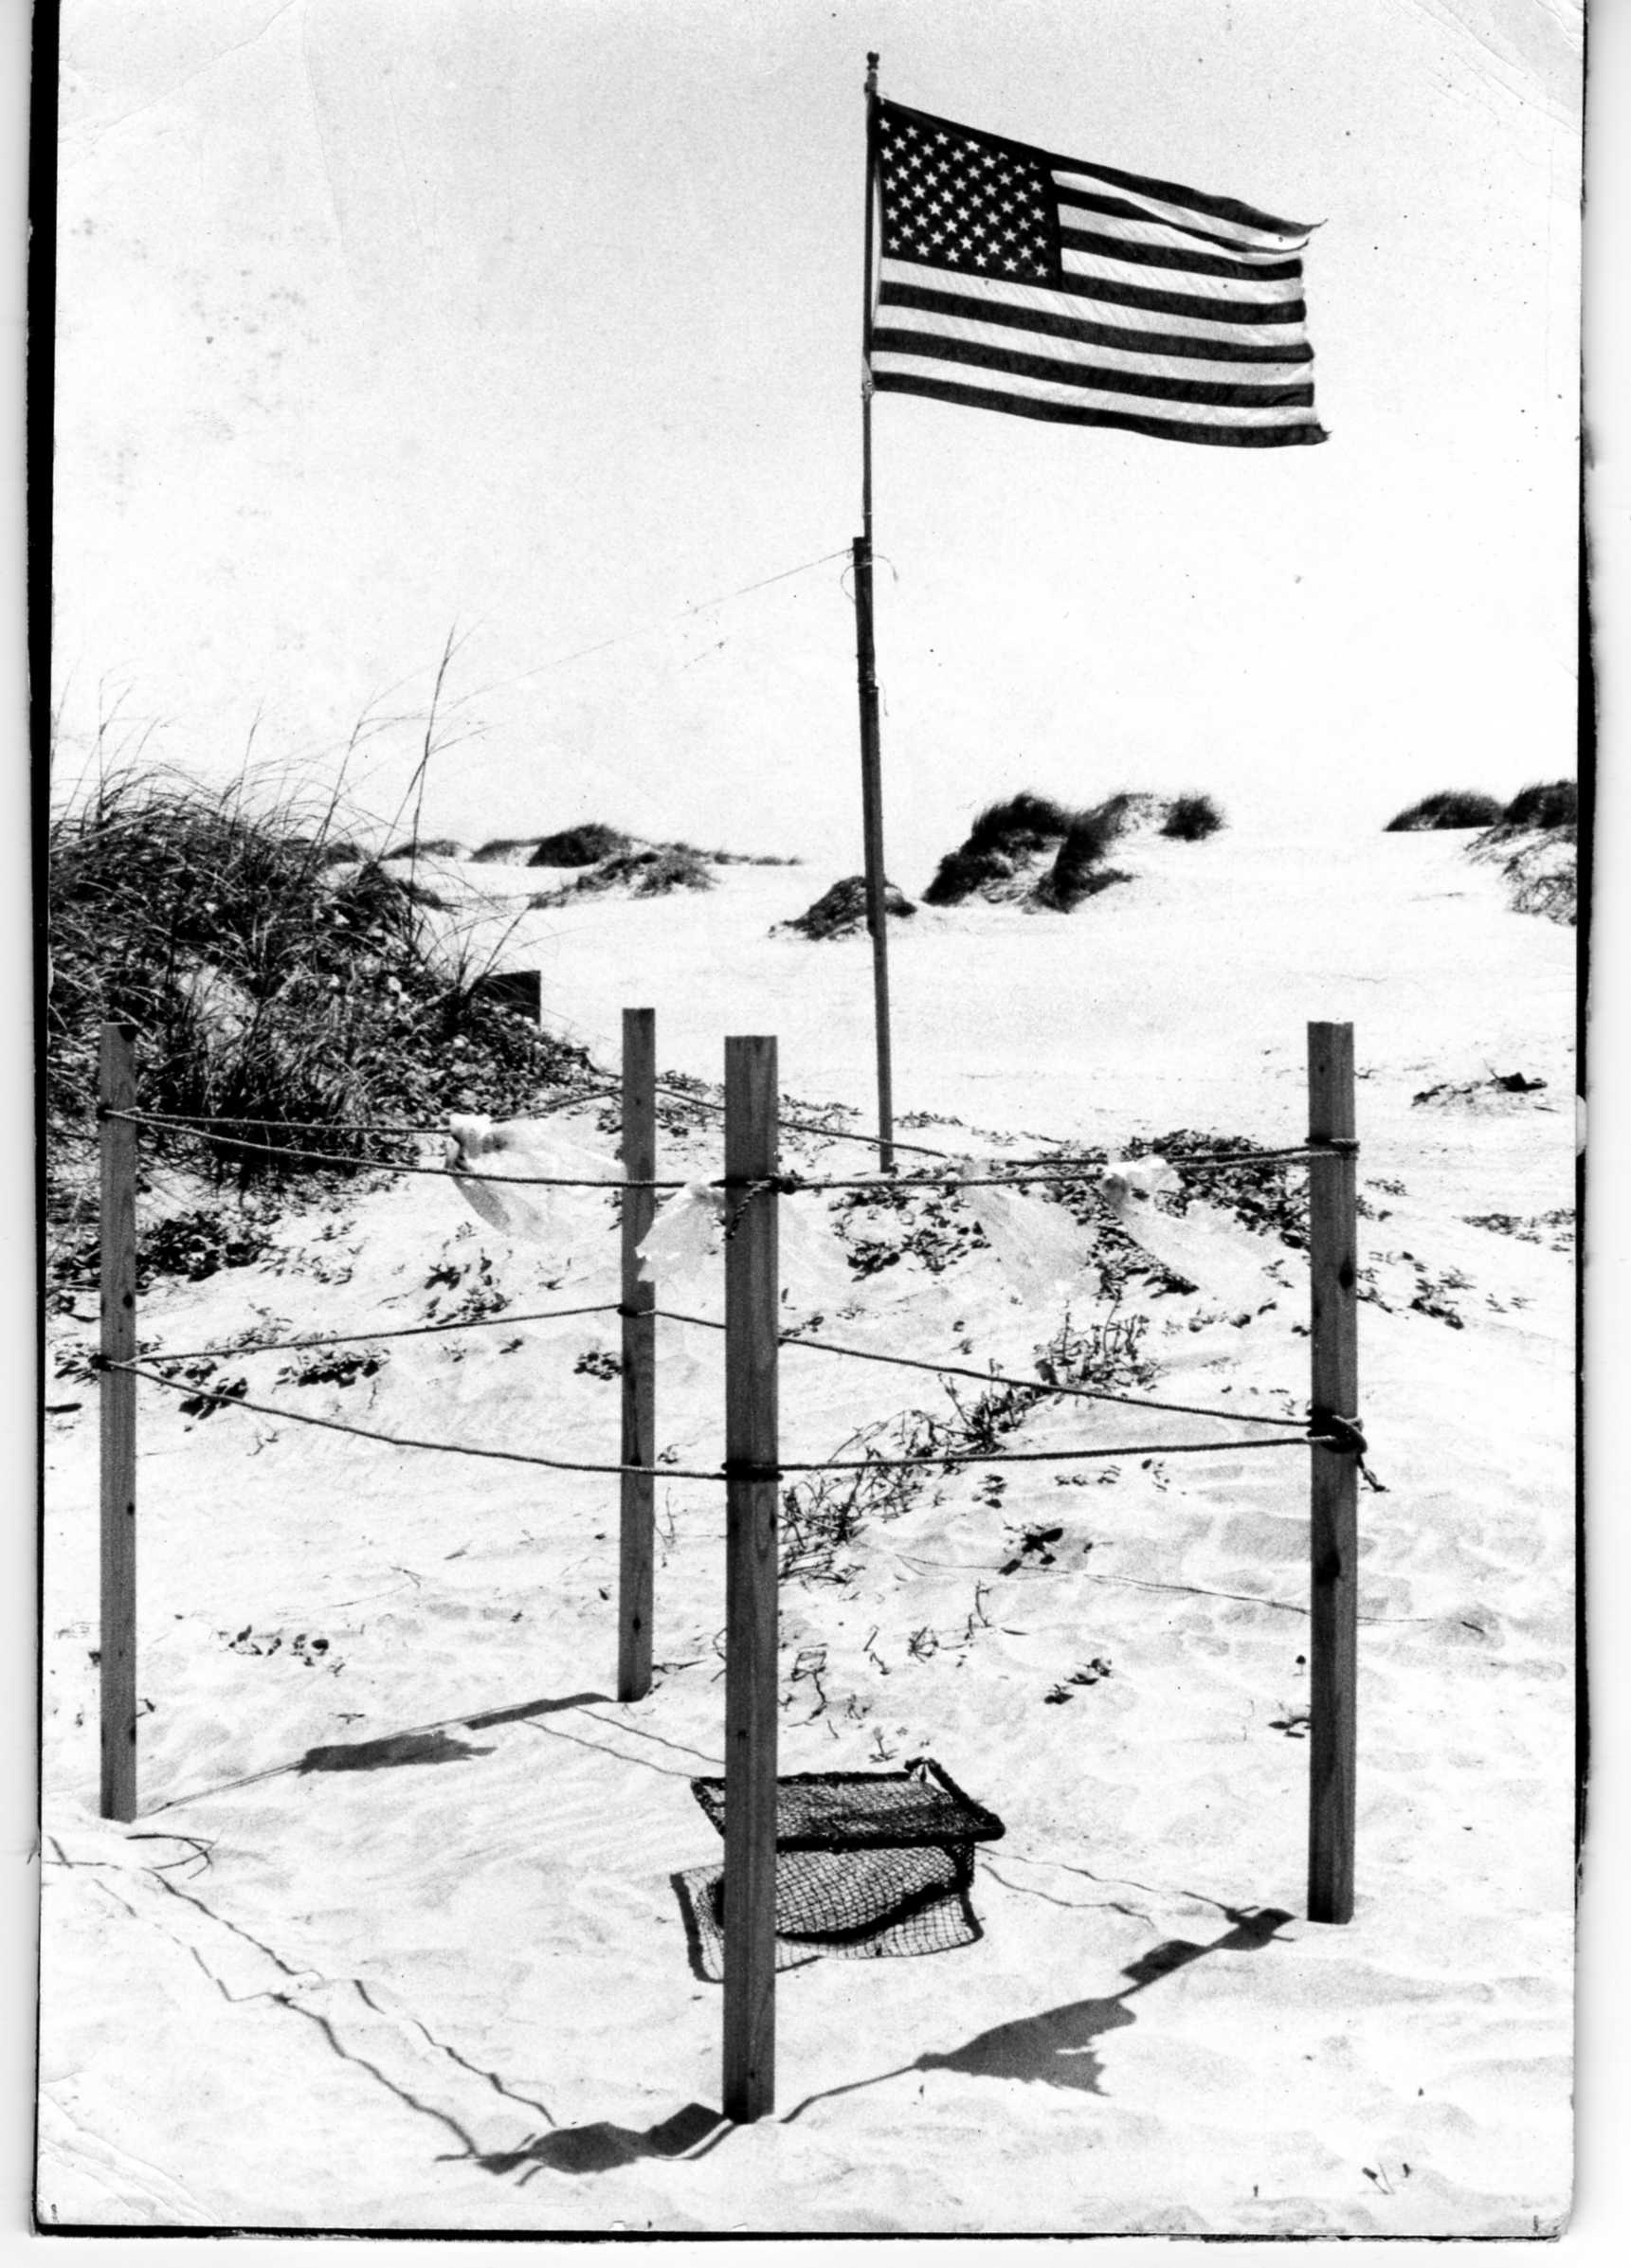 Sea turtle nests at Rancho Nuevo in the 1960s